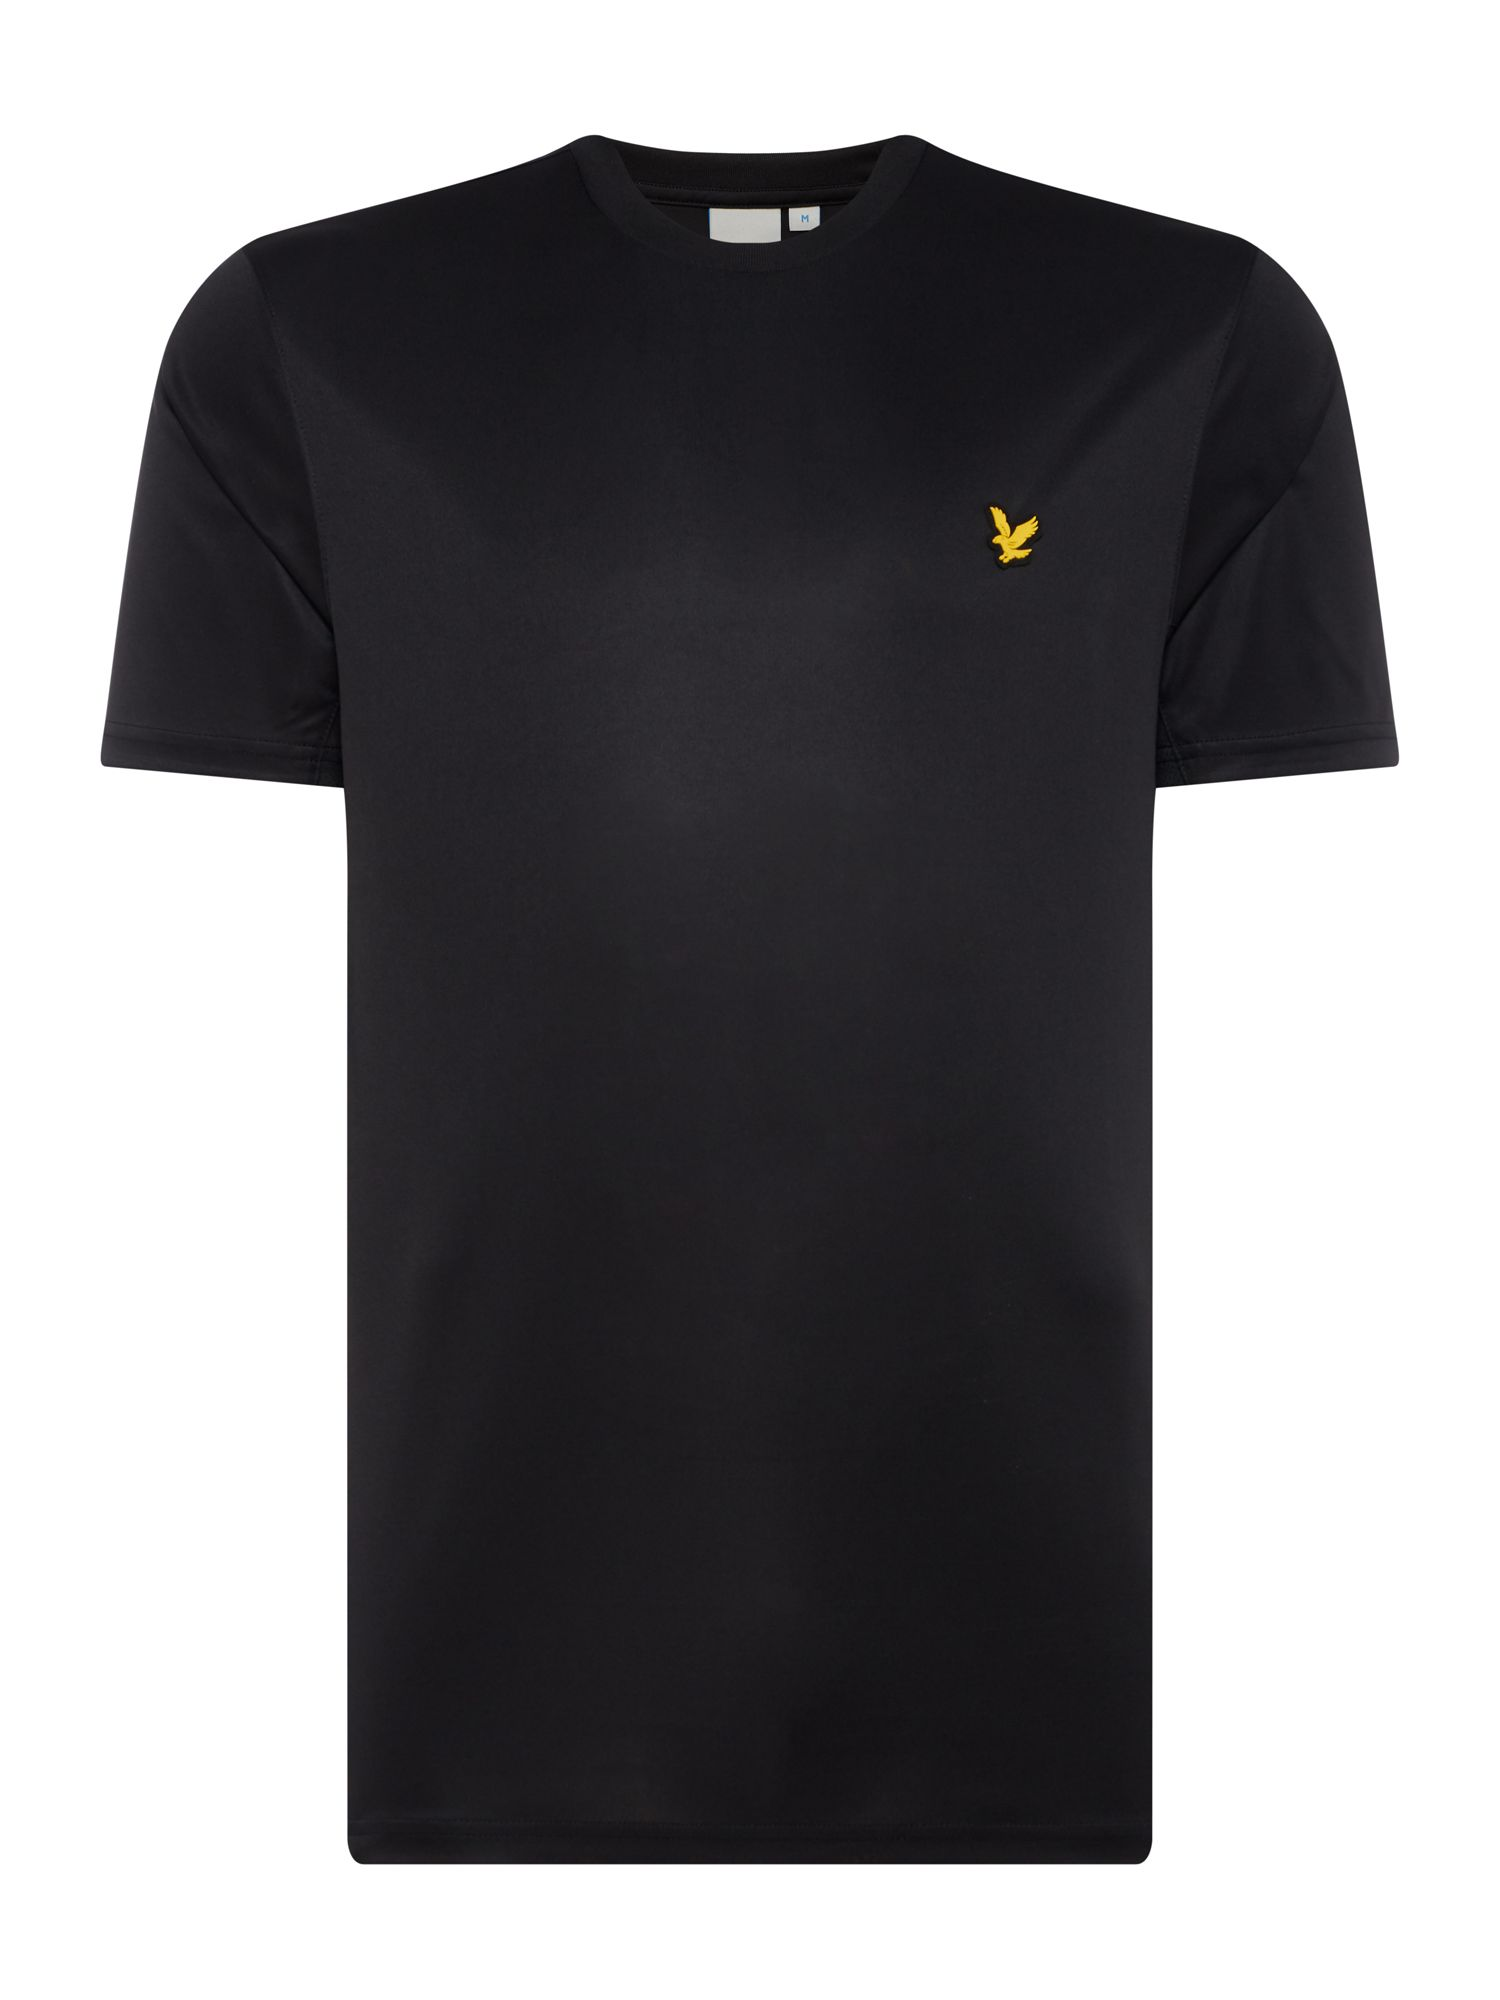 Men's Lyle and Scott Sports Crew-Neck Short-Sleeve T-Shirt, Black